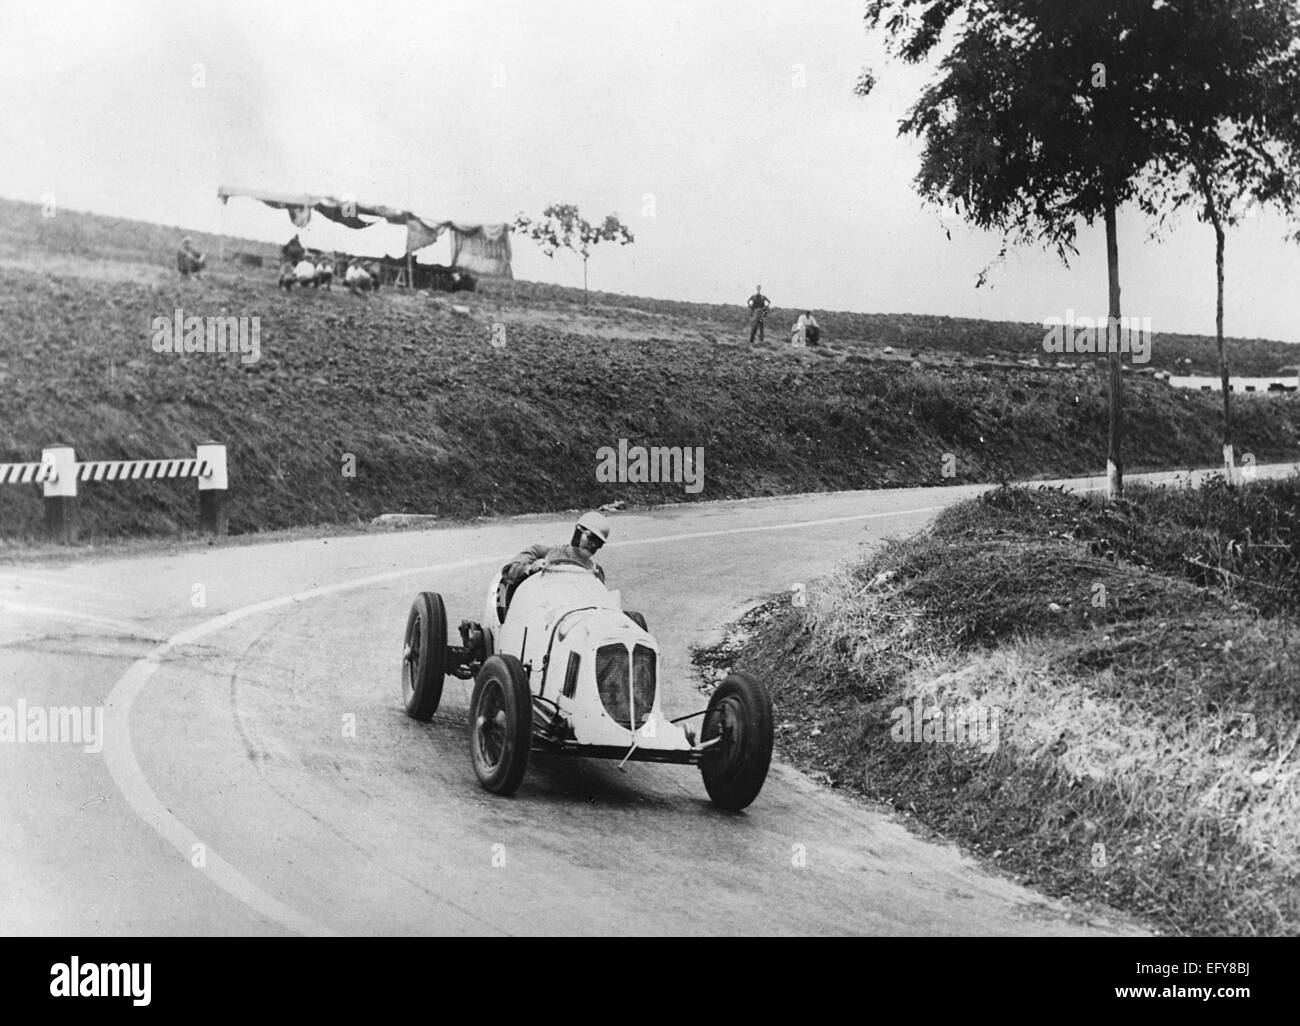 Maserati -Straight 8cm 2.9 1934 Pescara Coppa Acerbo. Whitney Straight. - Stock Image